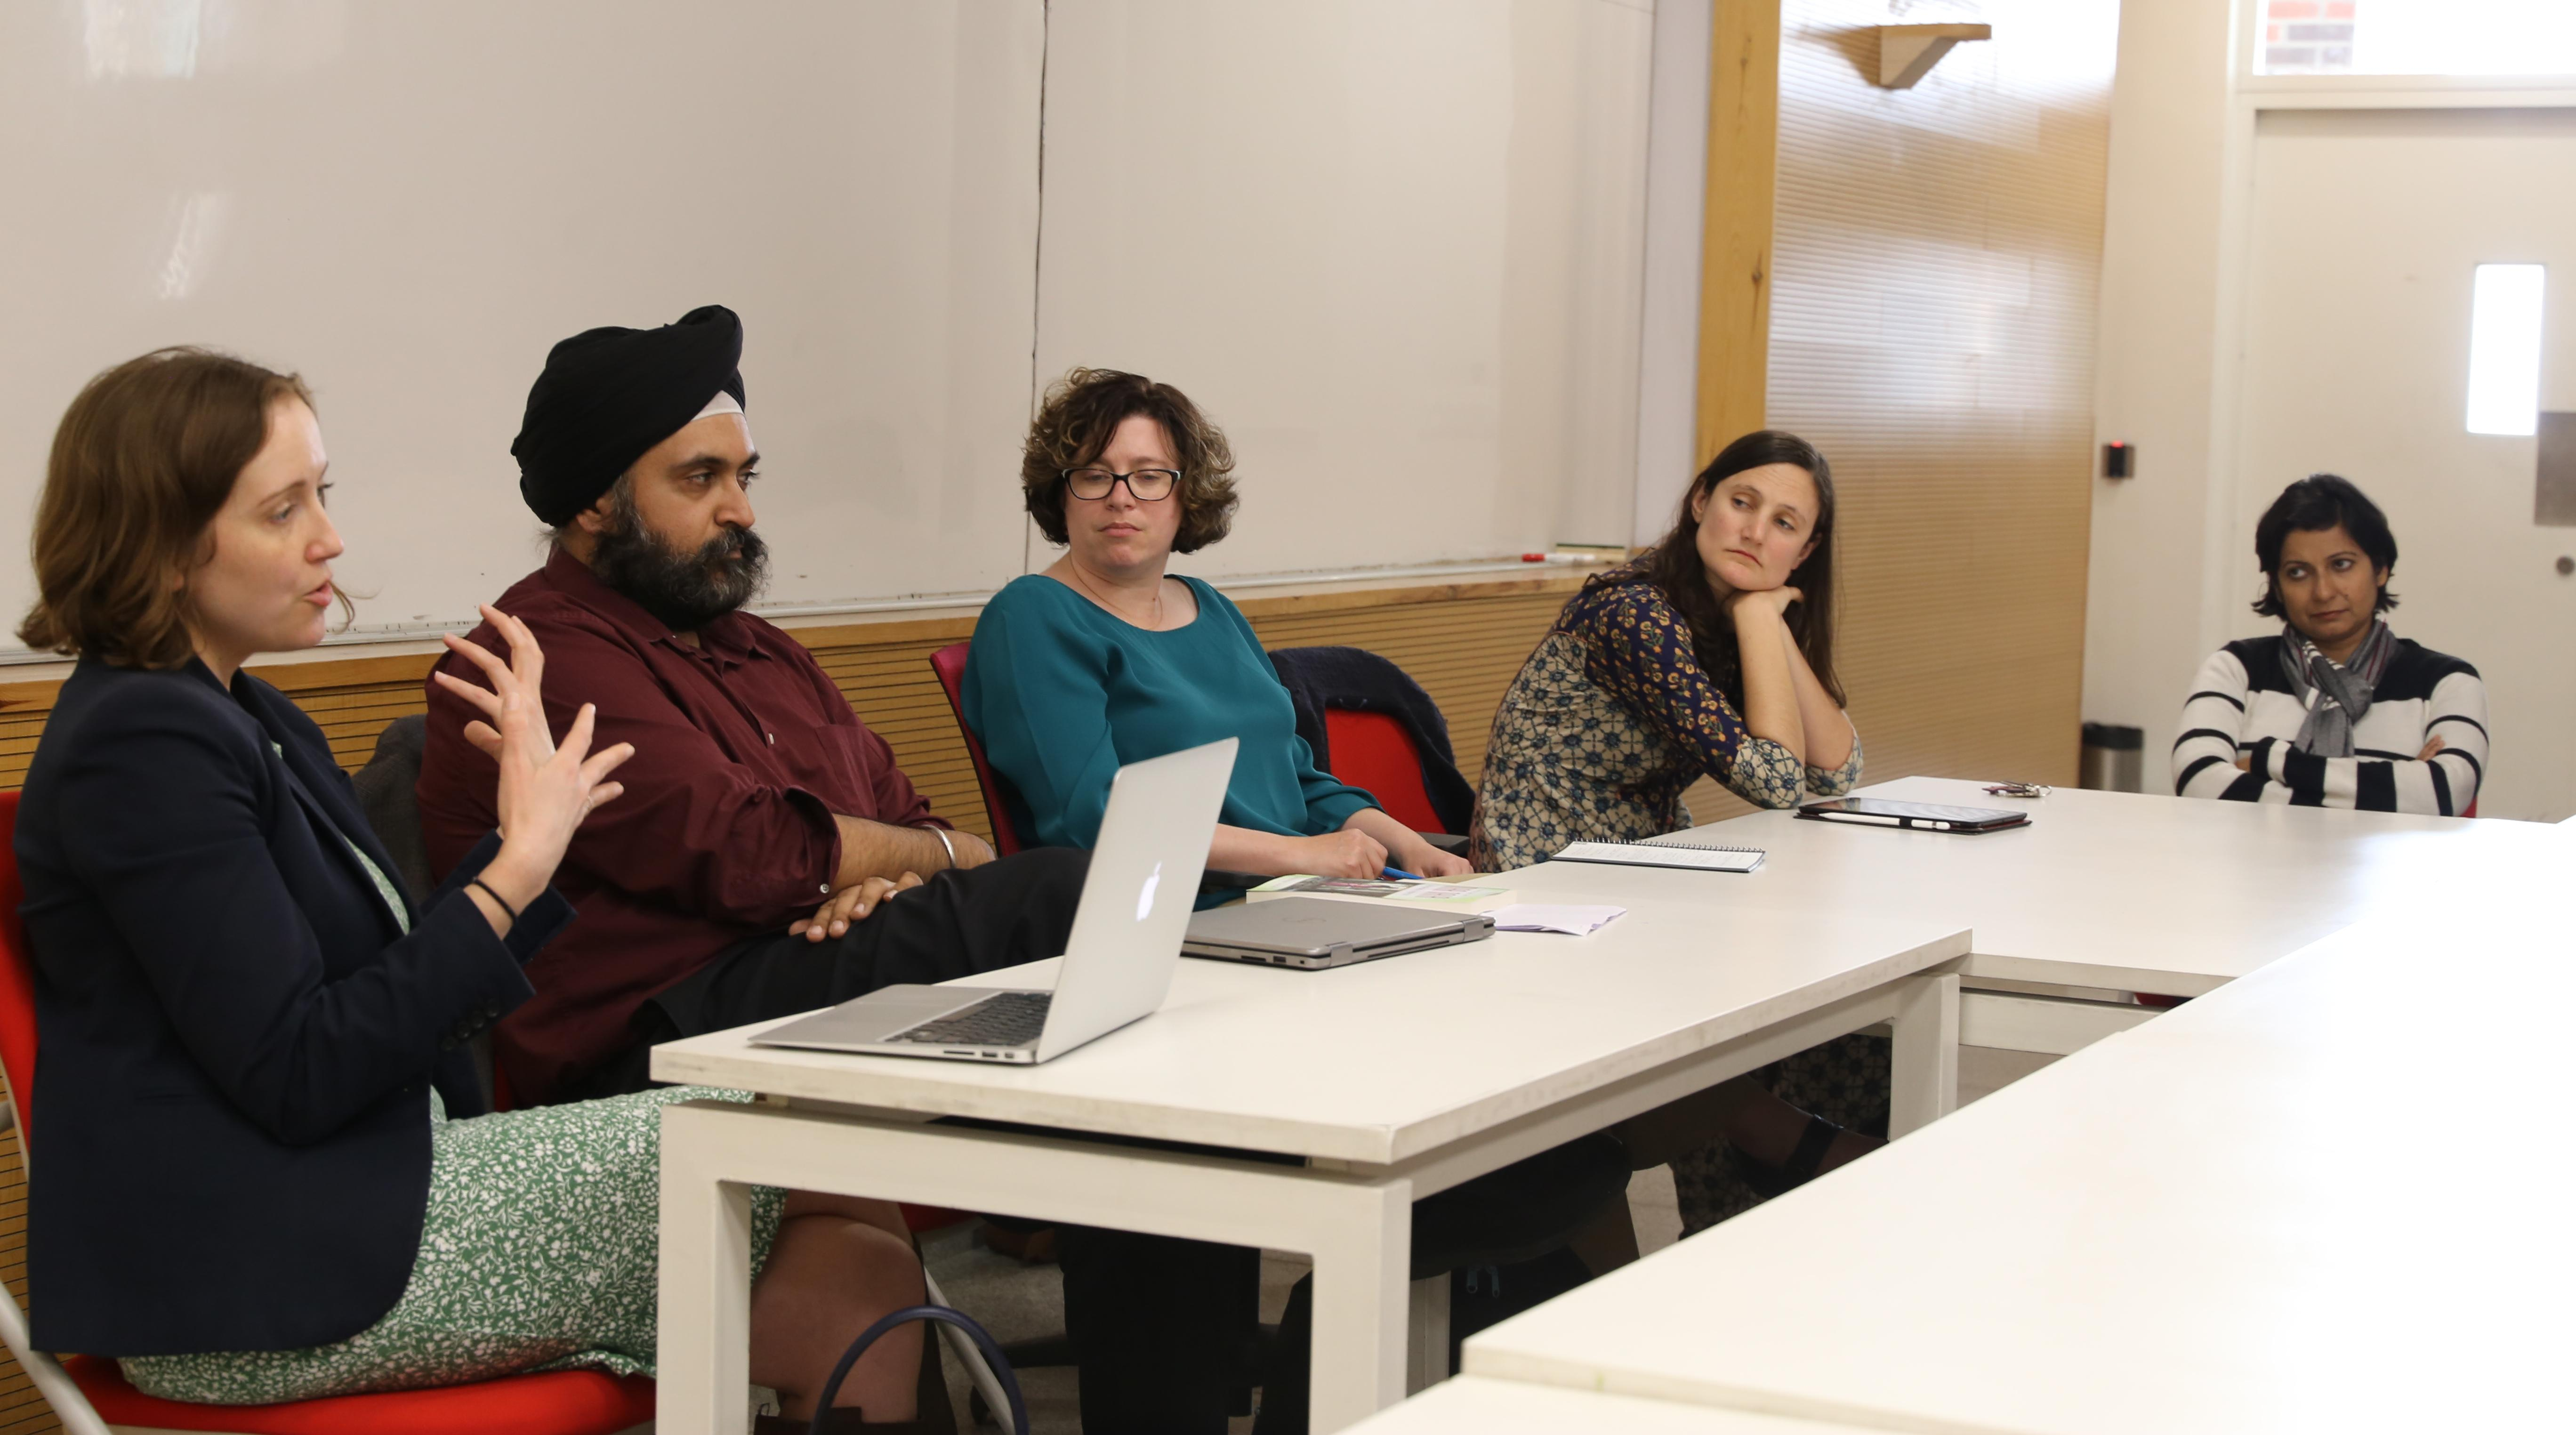 Jenna Lay (left), associate professor of English at Lehigh, discusses her research with colleagues at Ashoka University.